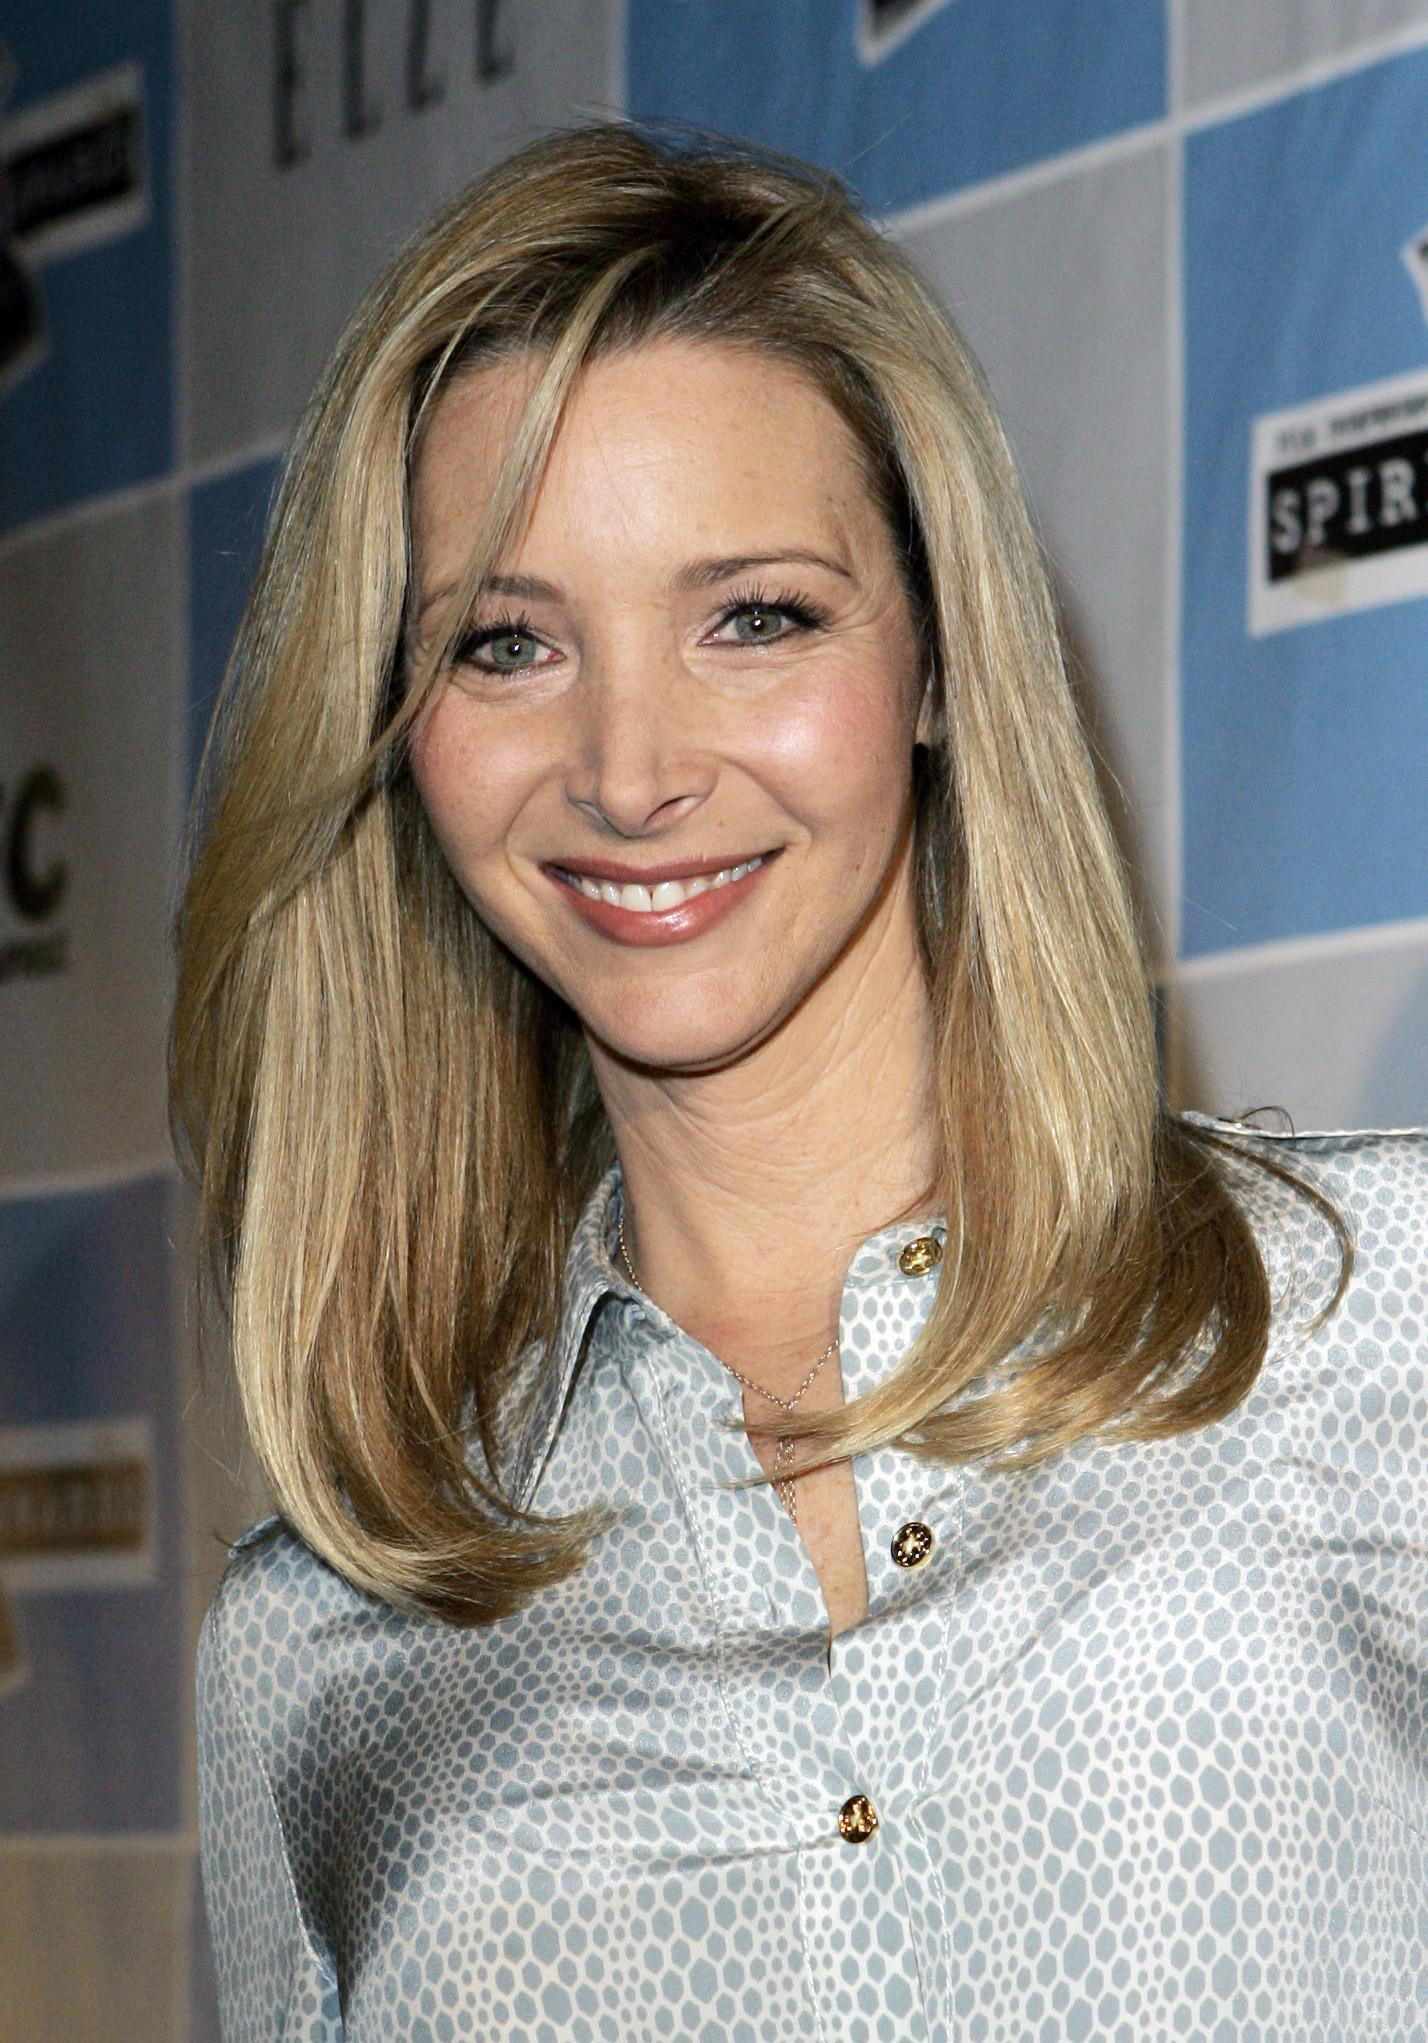 There won't be a Friends movie, says Lisa Kudrow | News